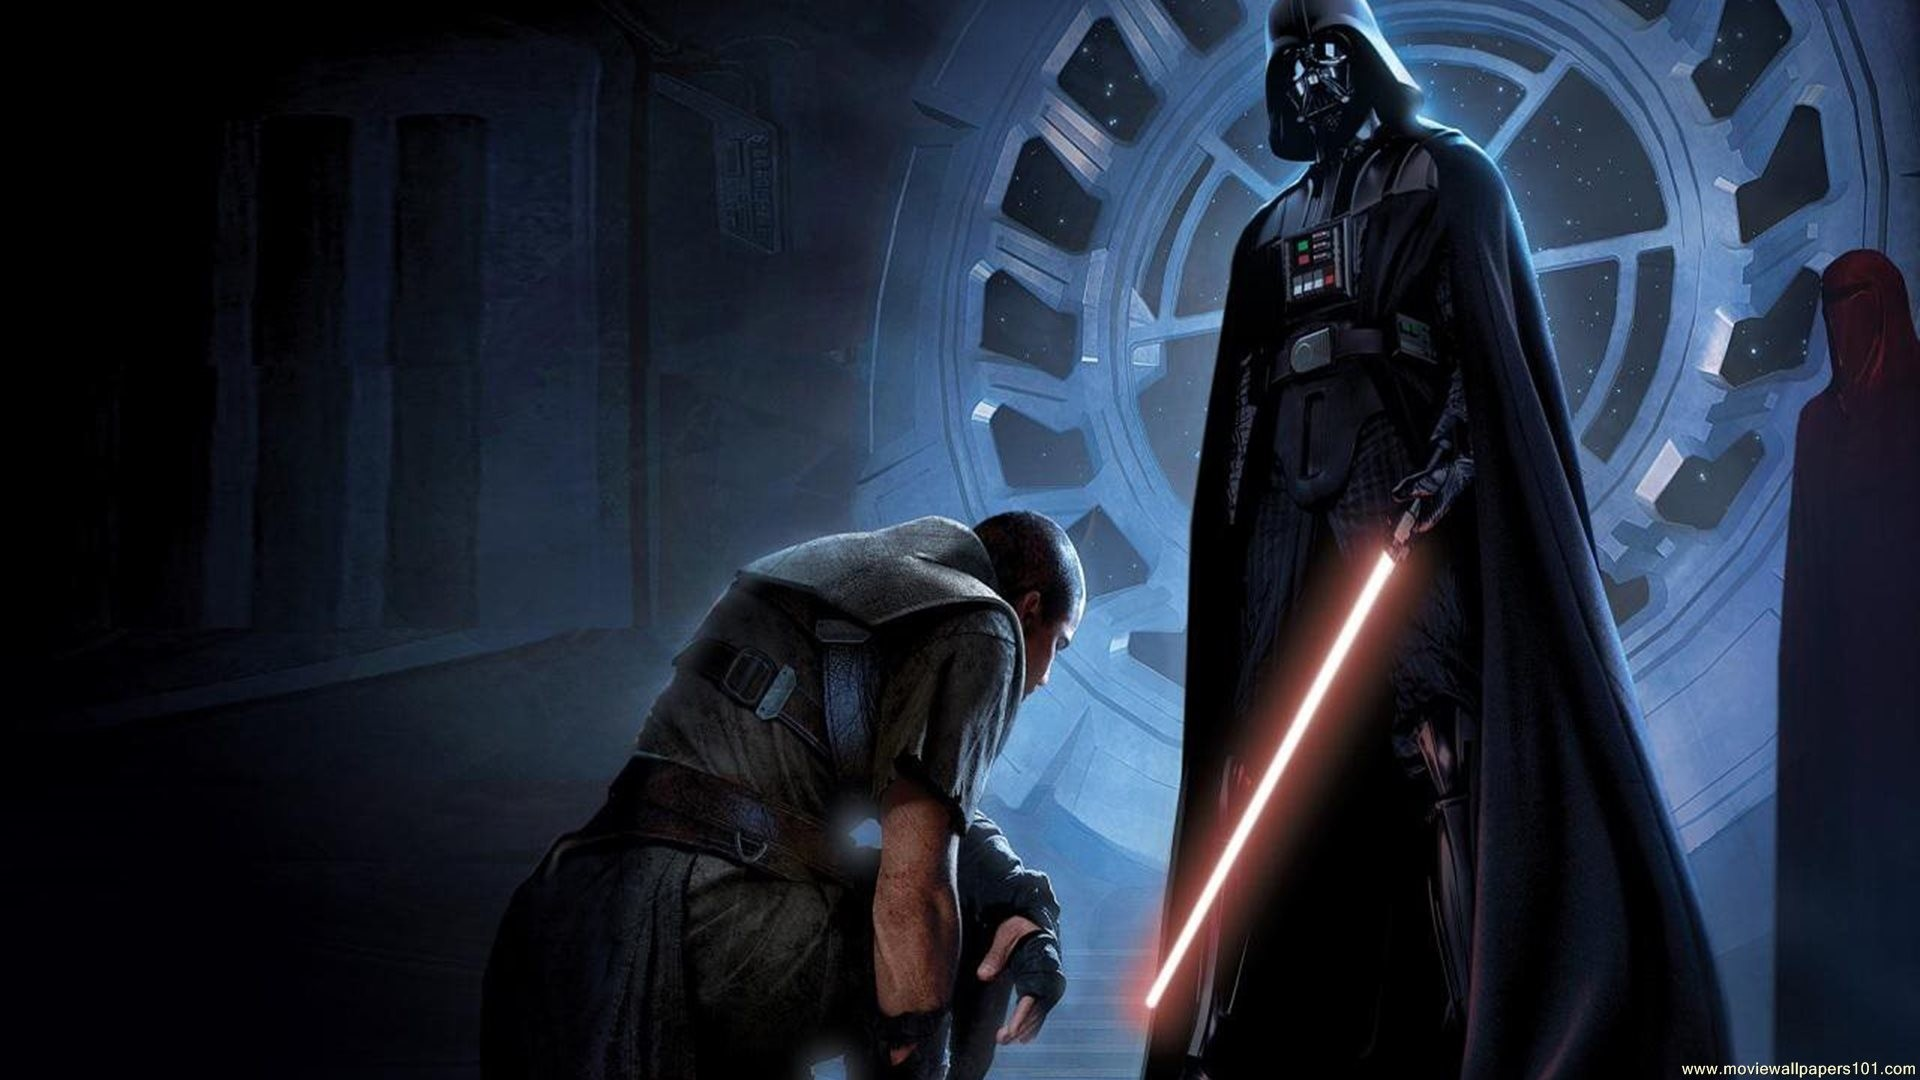 Pic In High Quality – Star Wars 7 by Aphrodite Meddick